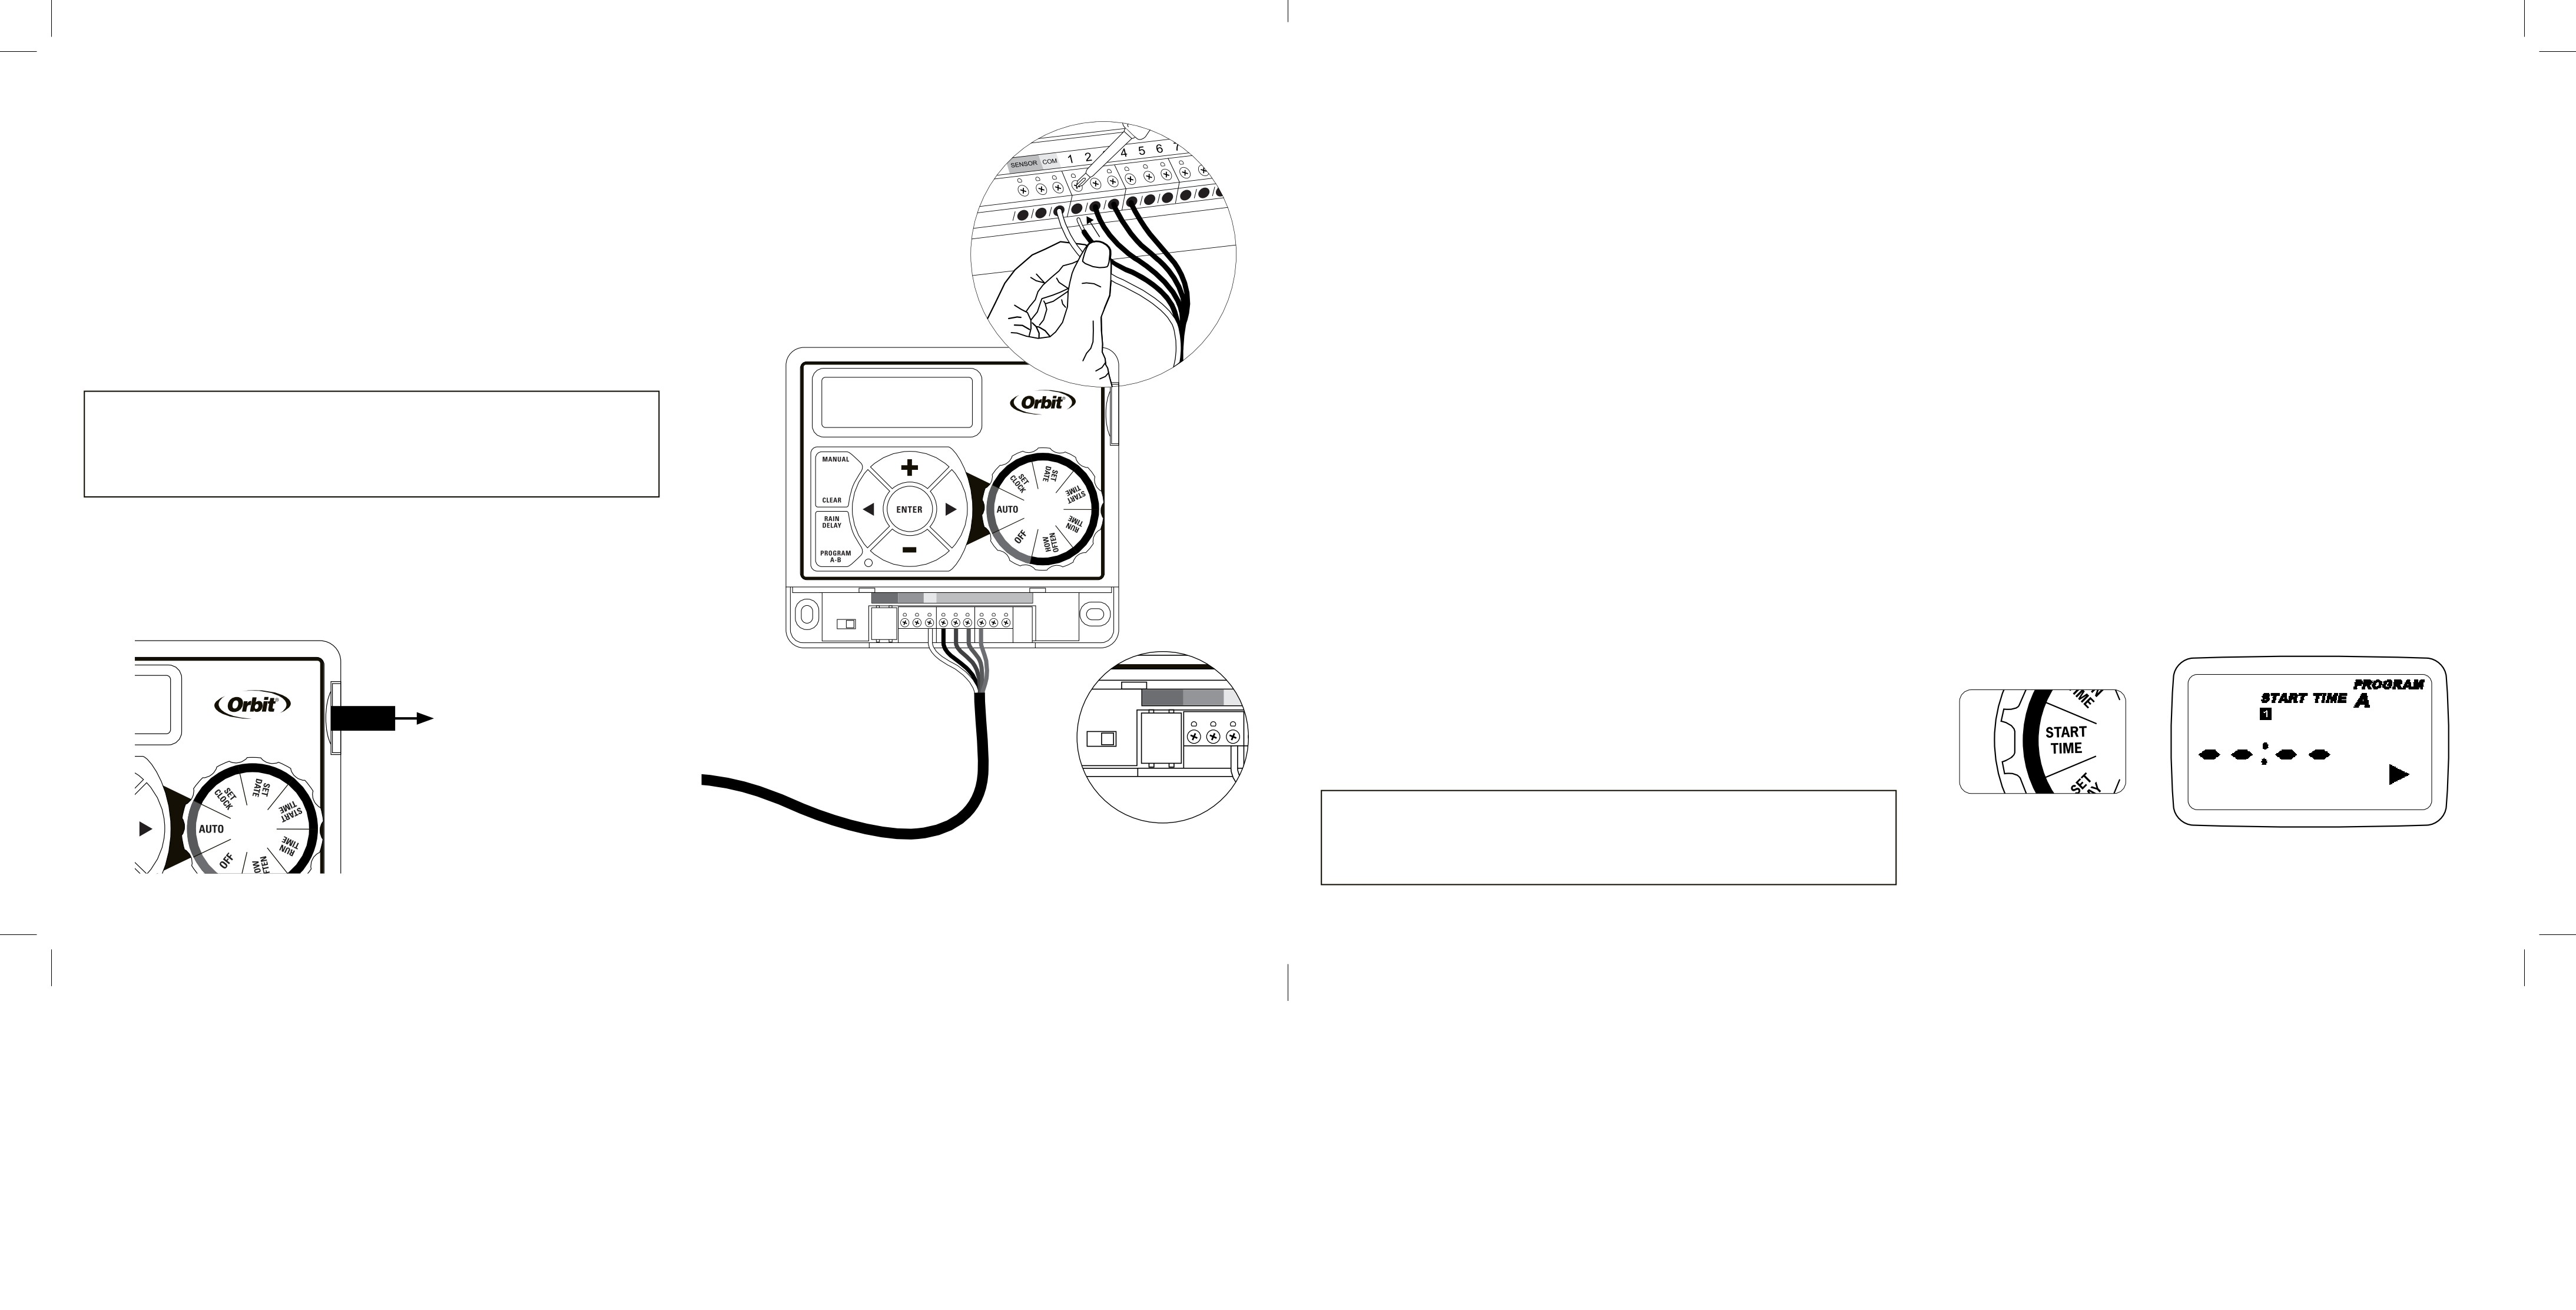 irrigation-hr-products-controllers-orbit-easydialguide2